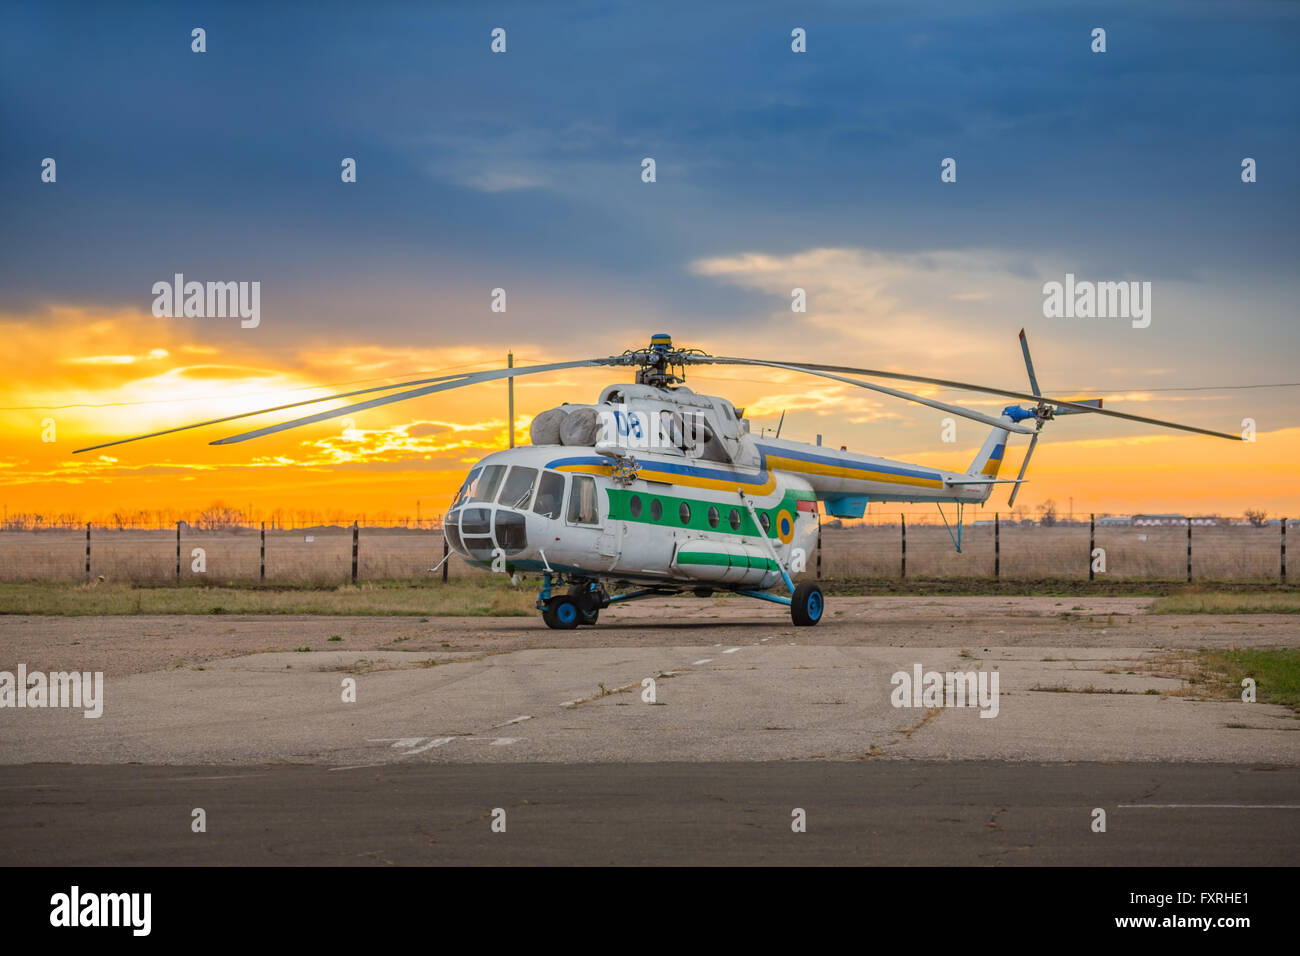 Helicopter parked at the helipad - Stock Image